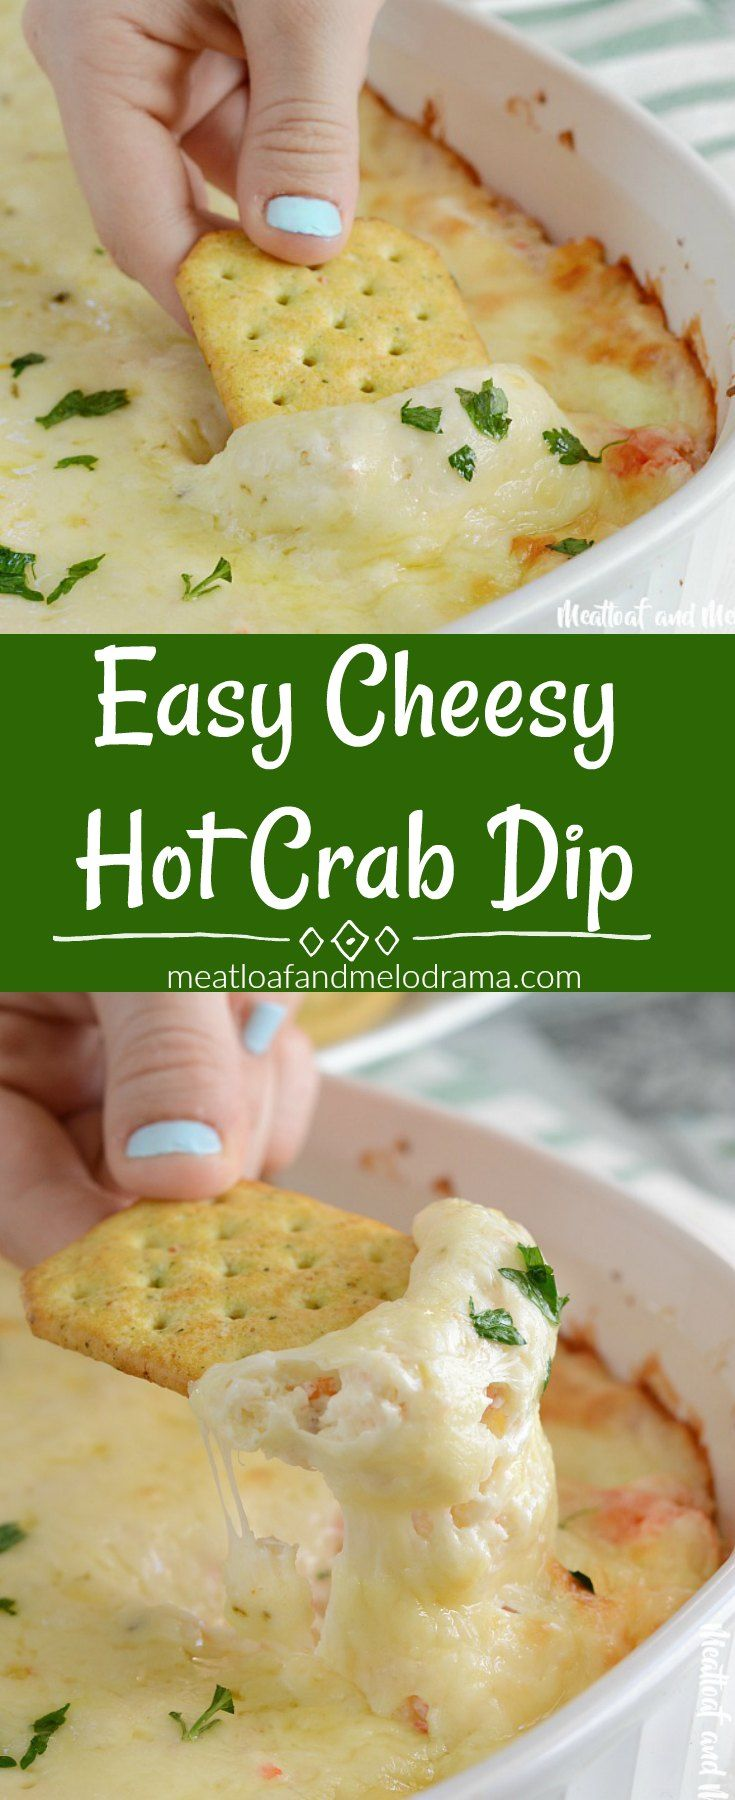 This easy cheesy Hot Crab Dip recipe makes a delicious appetizer for holiday parties, gameday, or any occasion that calls for amazing snacks.